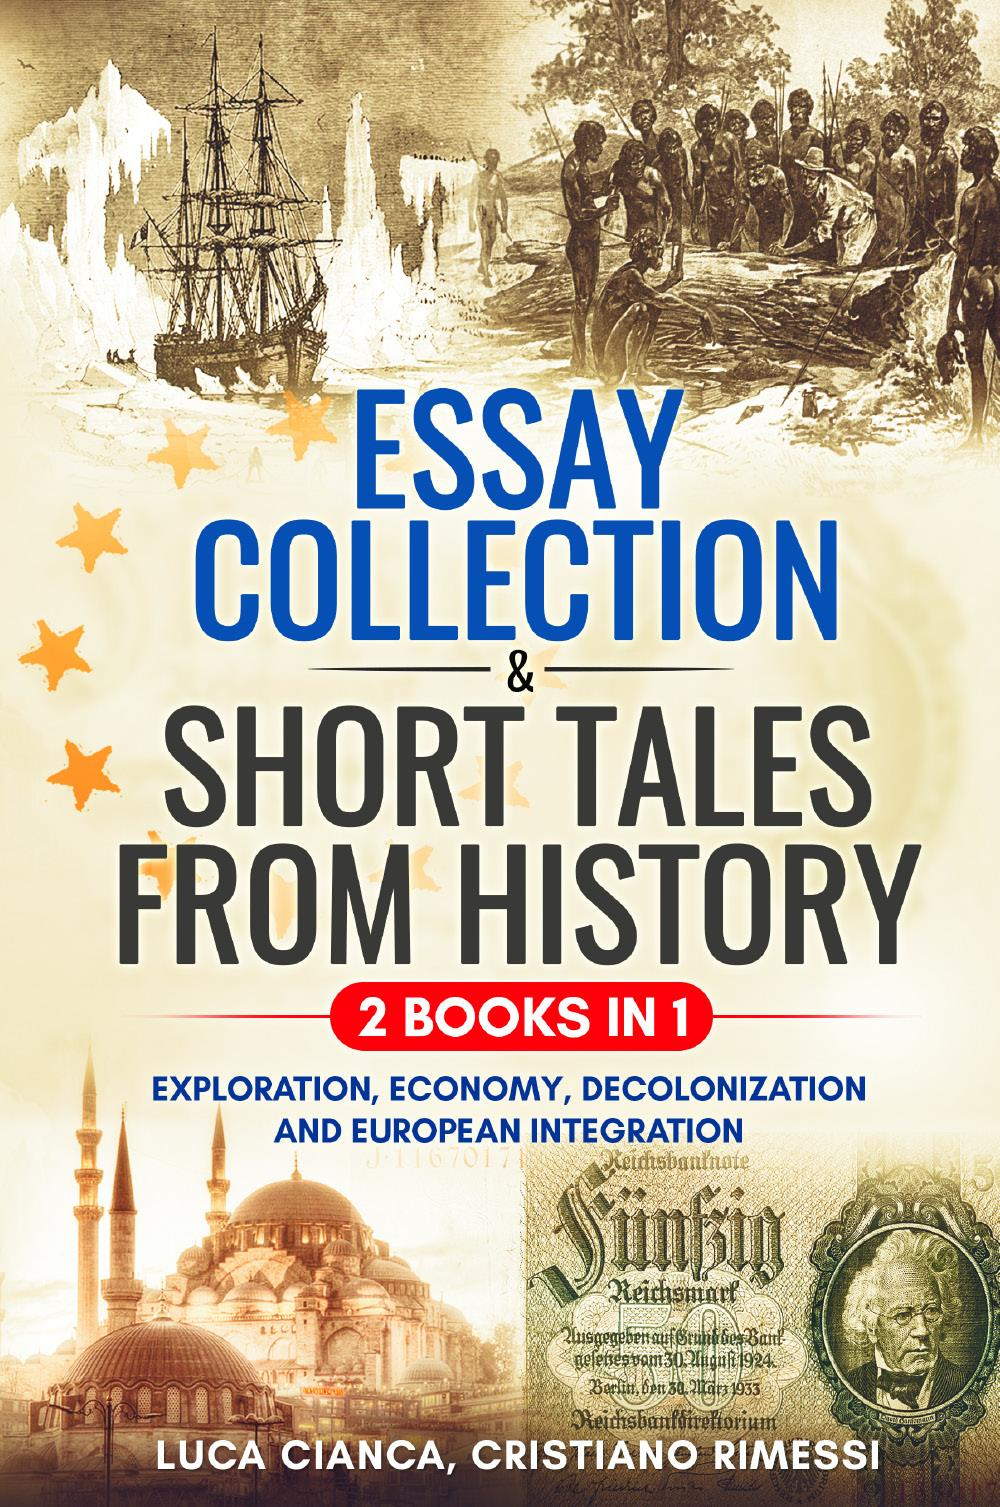 ESSAY COLLECTION & SHORT TALES FROM HISTORY     (2 Books in 1)